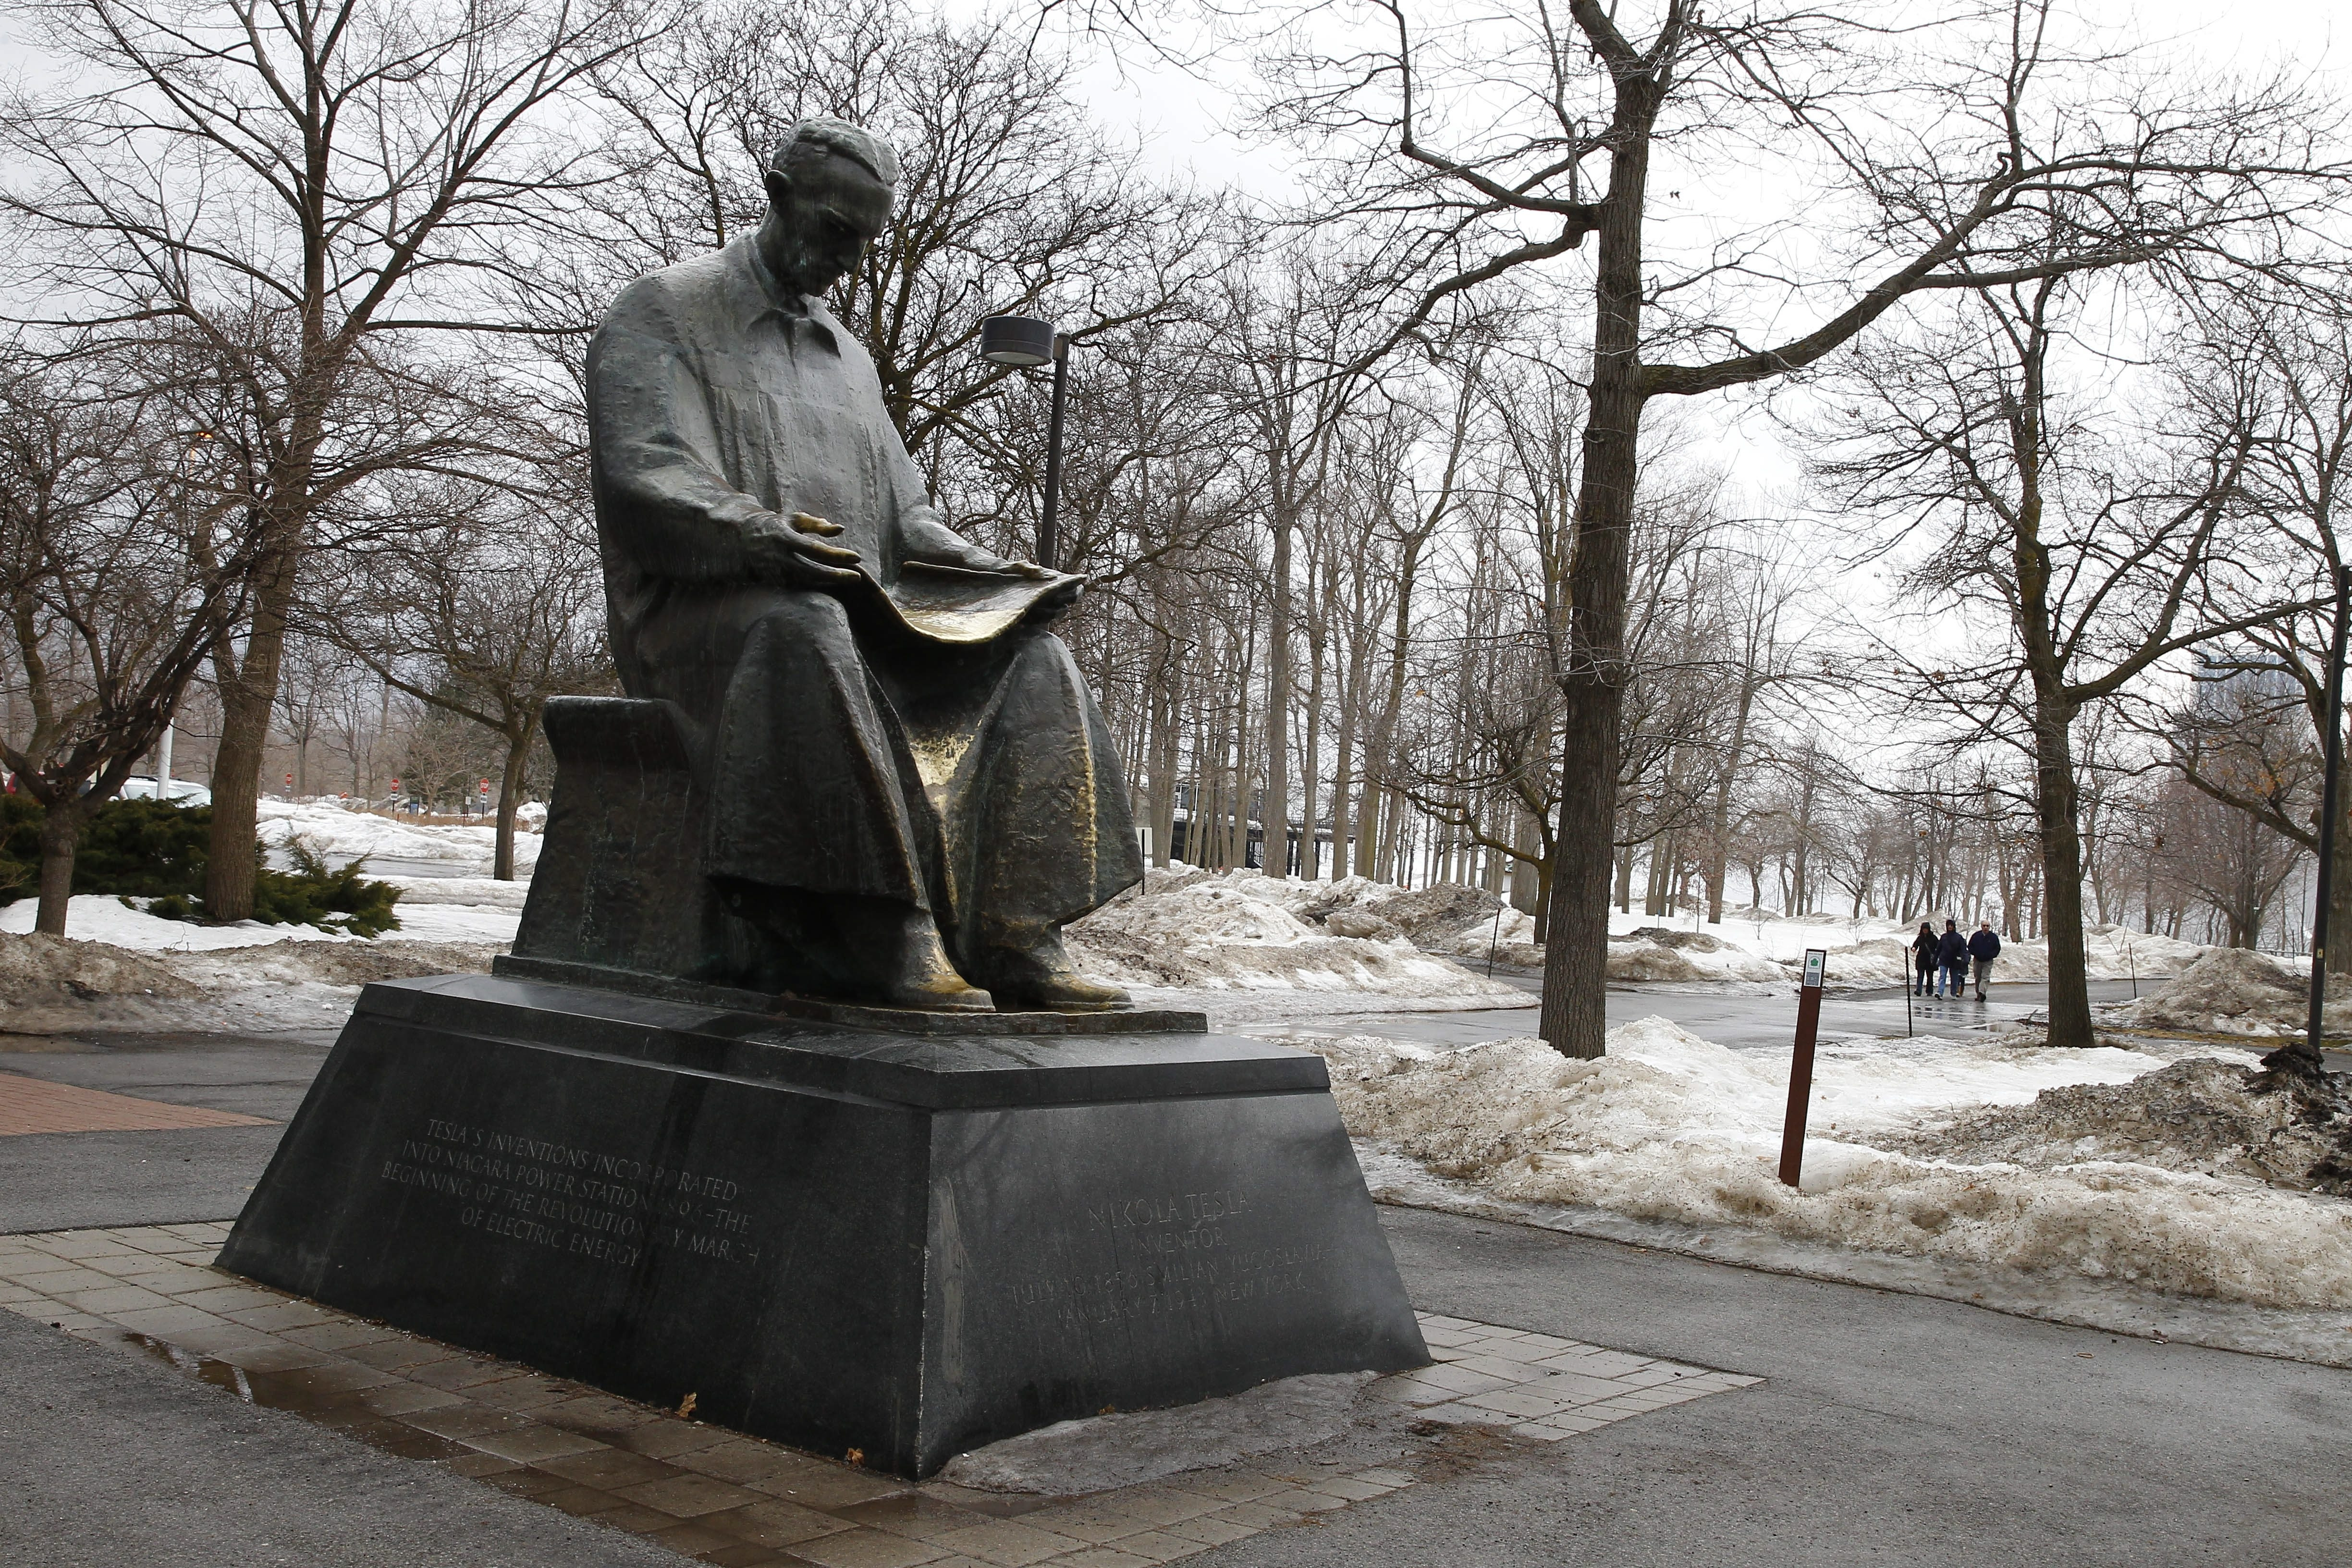 The Tesla statue on Goat Island honors the man who invented the alternating current system.